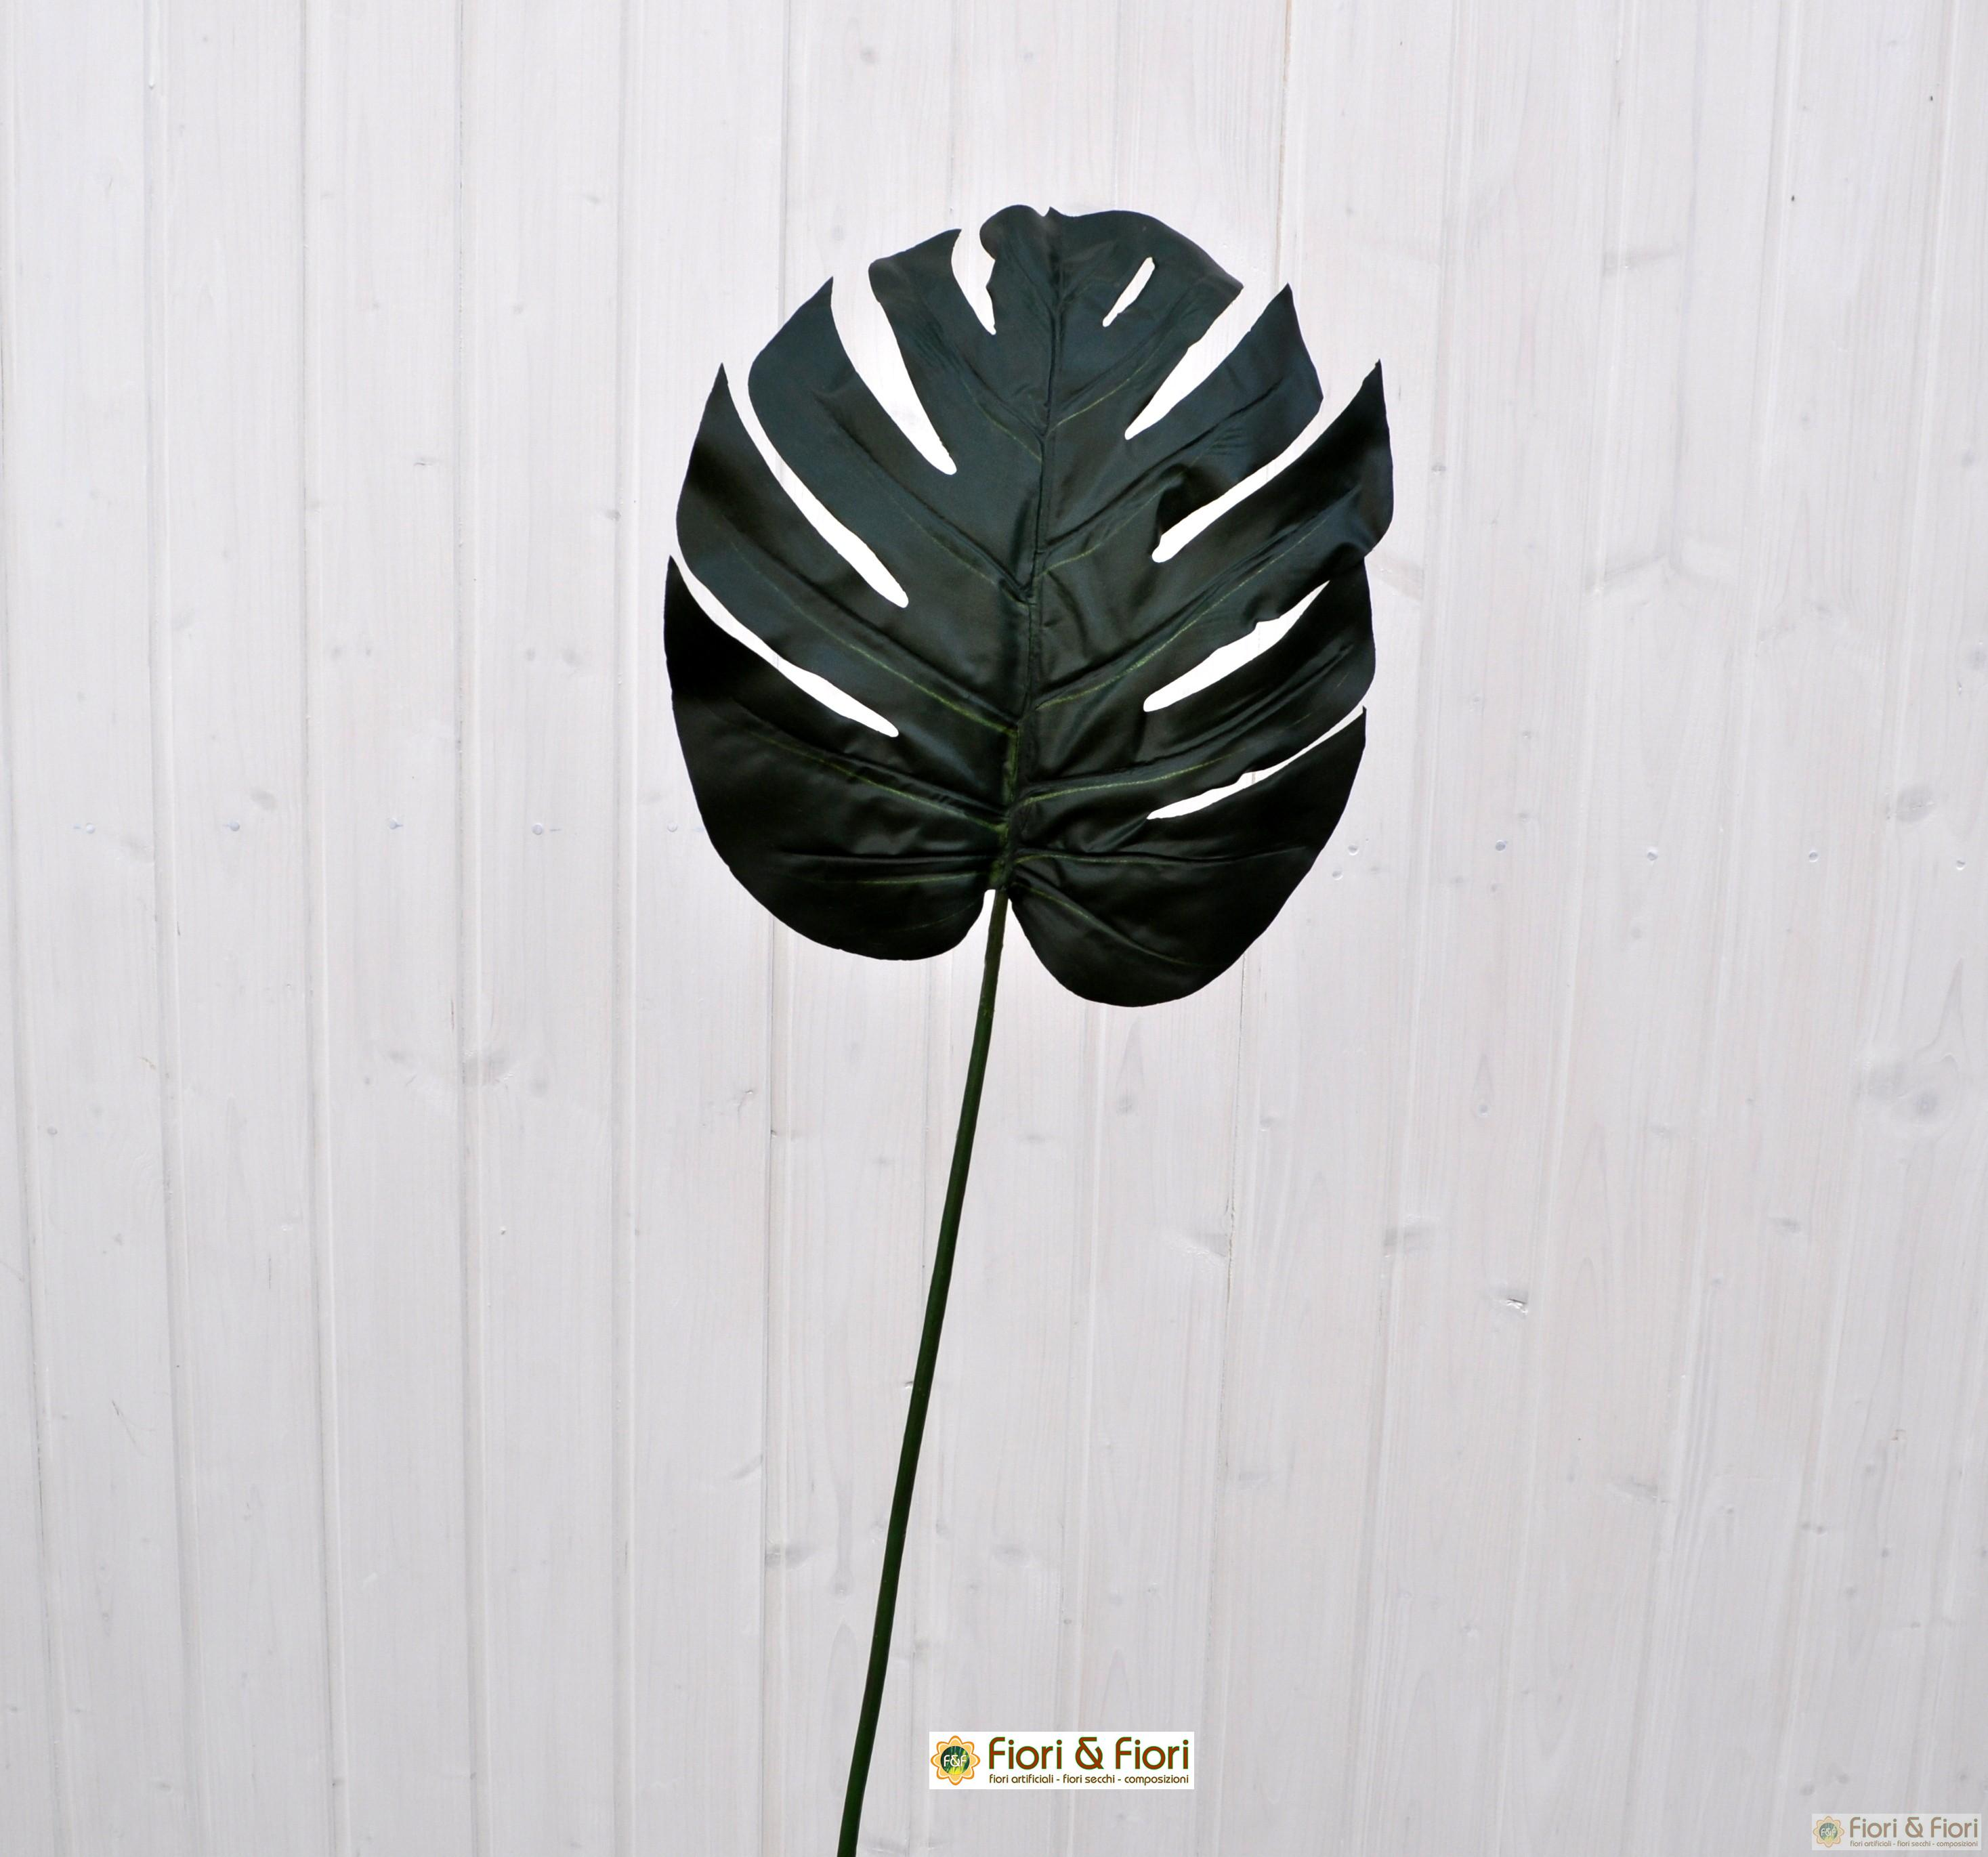 Foglia philodendron artificiale